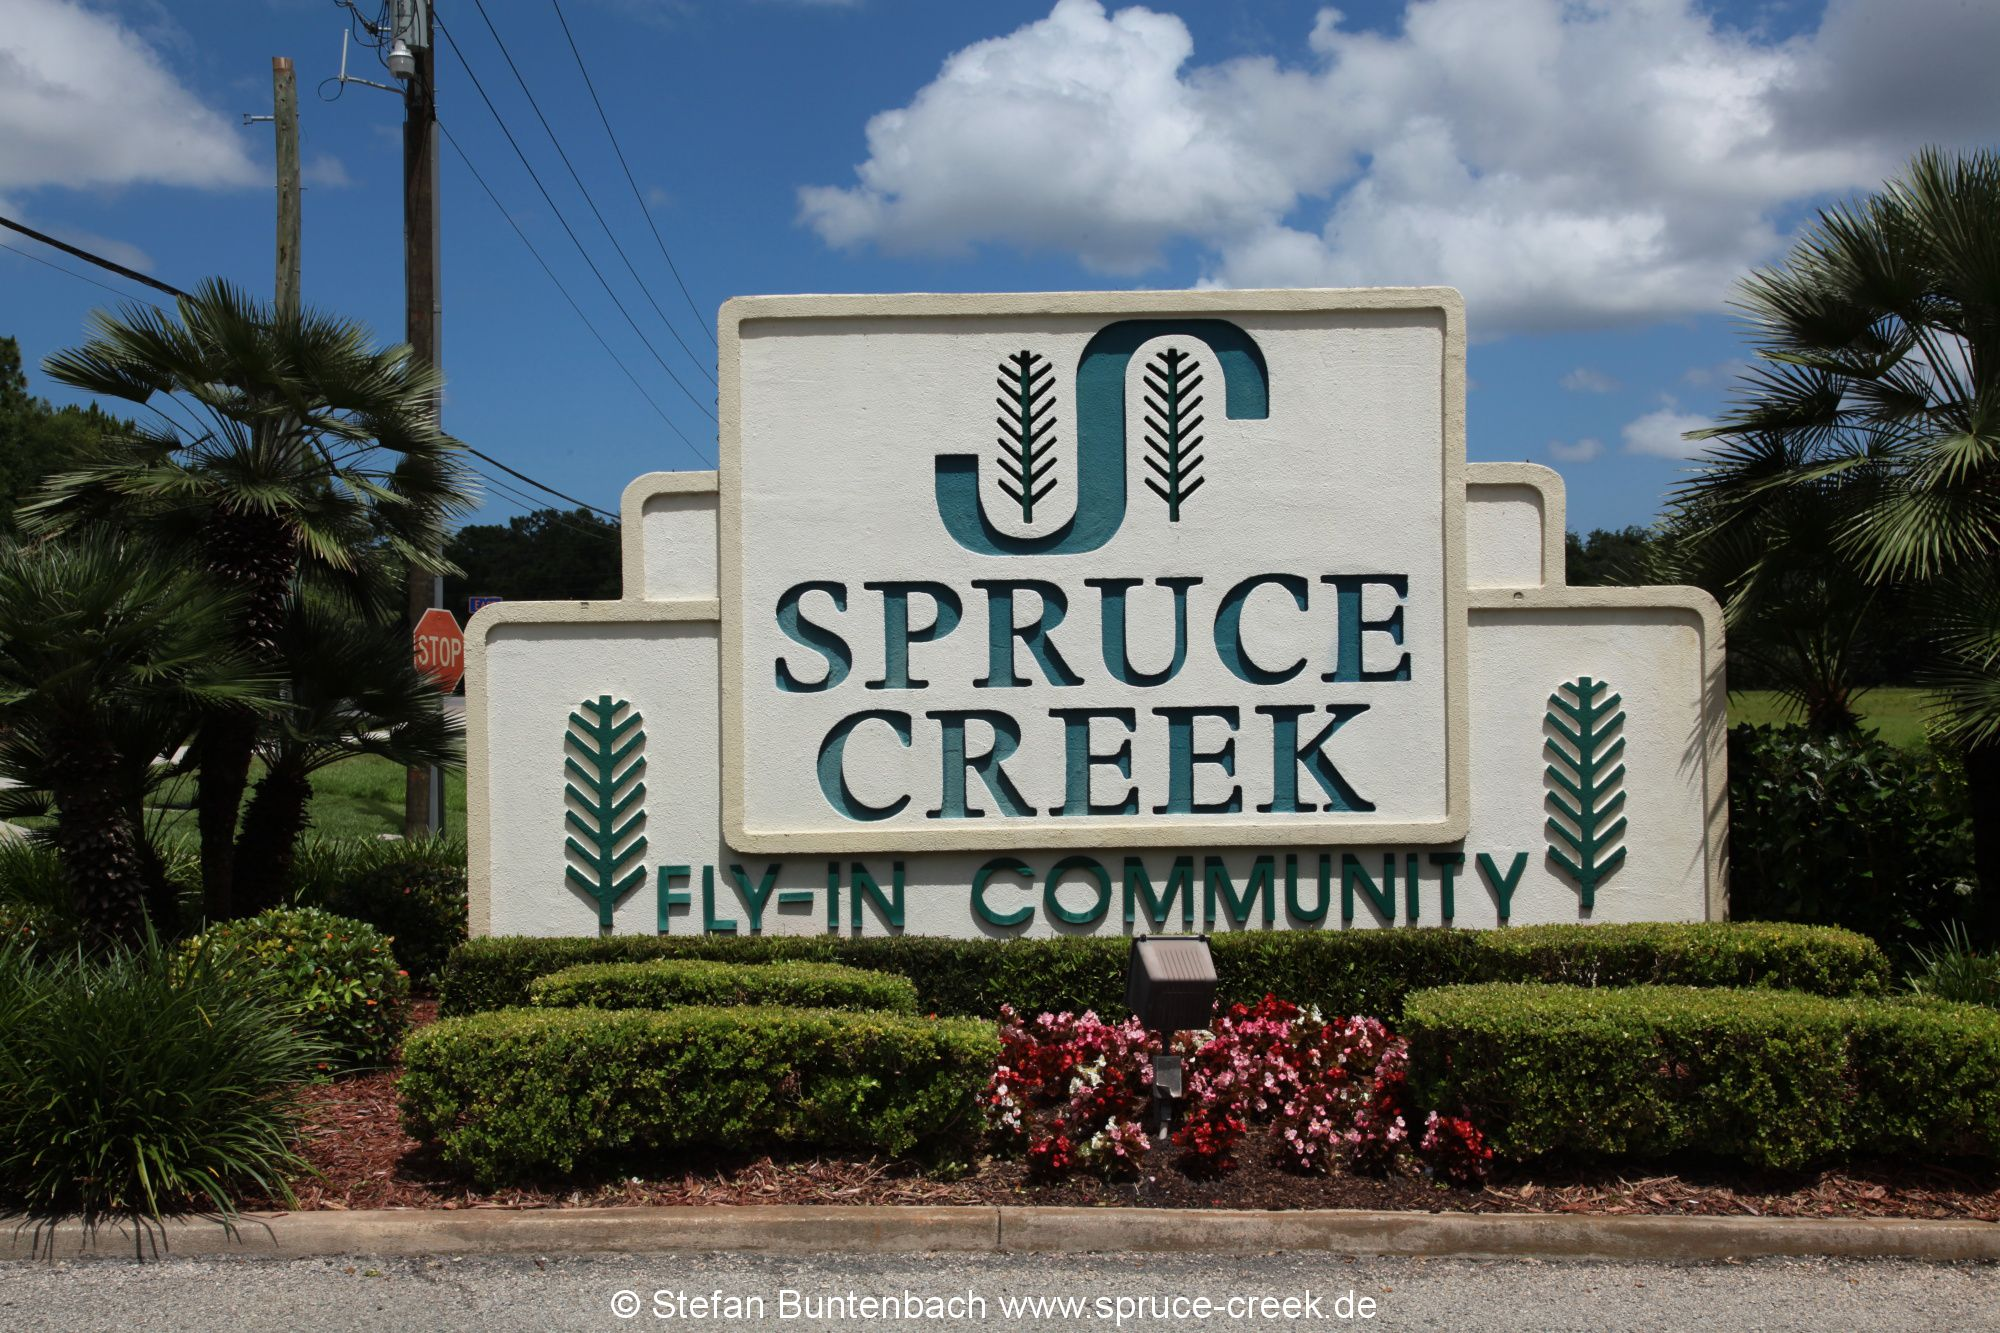 Spruce Creek Eingangsschlid am Nord Gate der Spruce Creek Fly In Community in Florida. Spruce Creek Sign at the noth gate of the Spruce Creek Airpark in Florida.